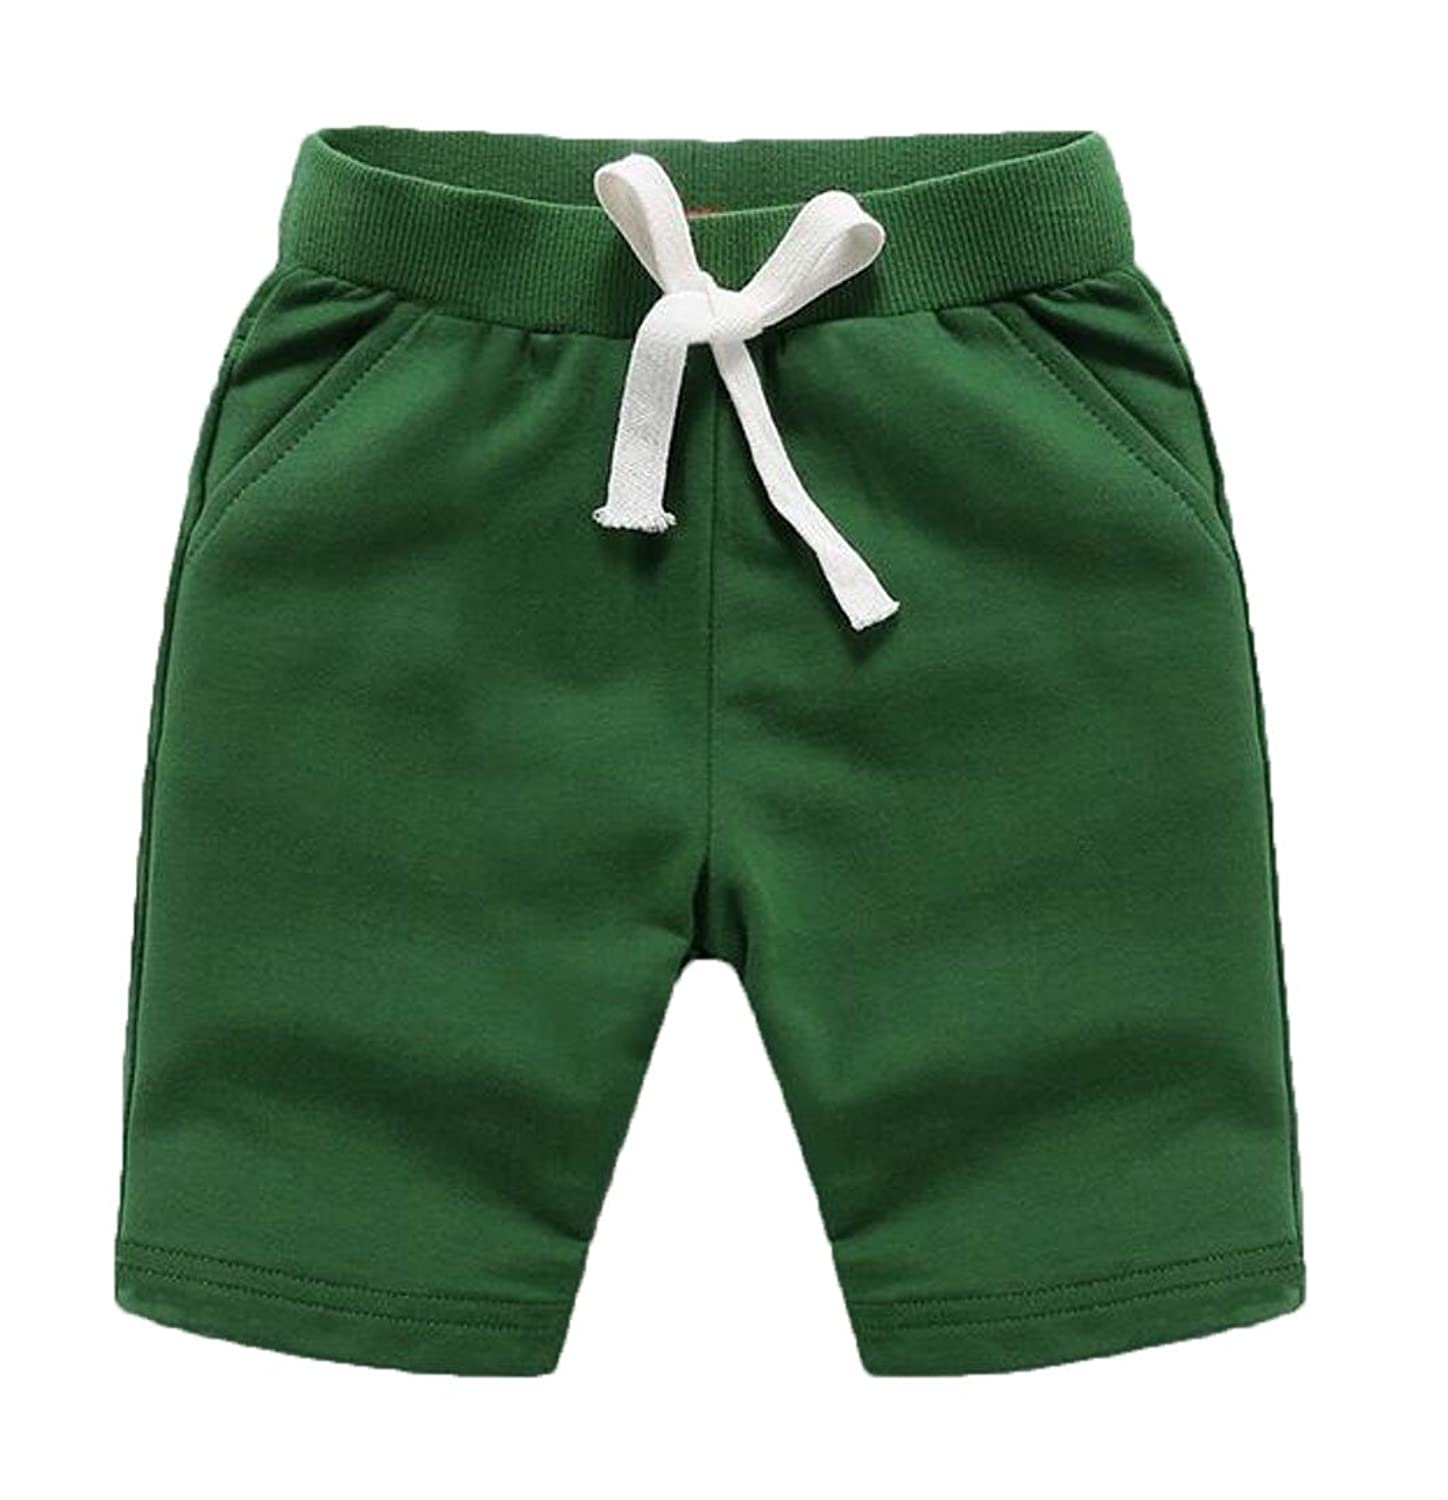 Sweatwater SHORTS ボーイズ